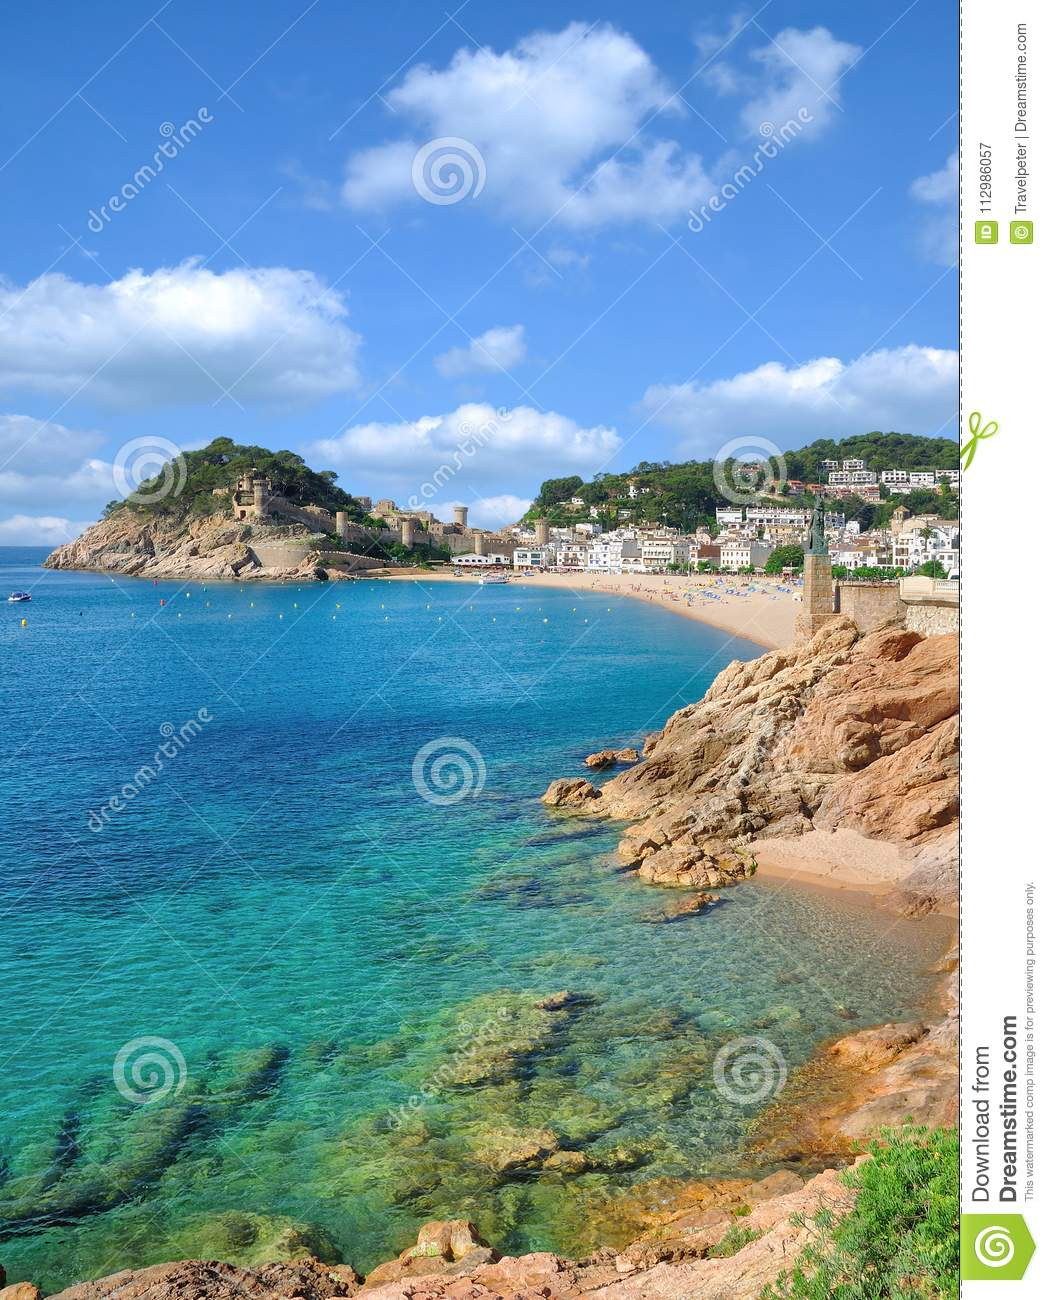 Village of Tossa de Mar,Costa Brava,Catalonia,Spain